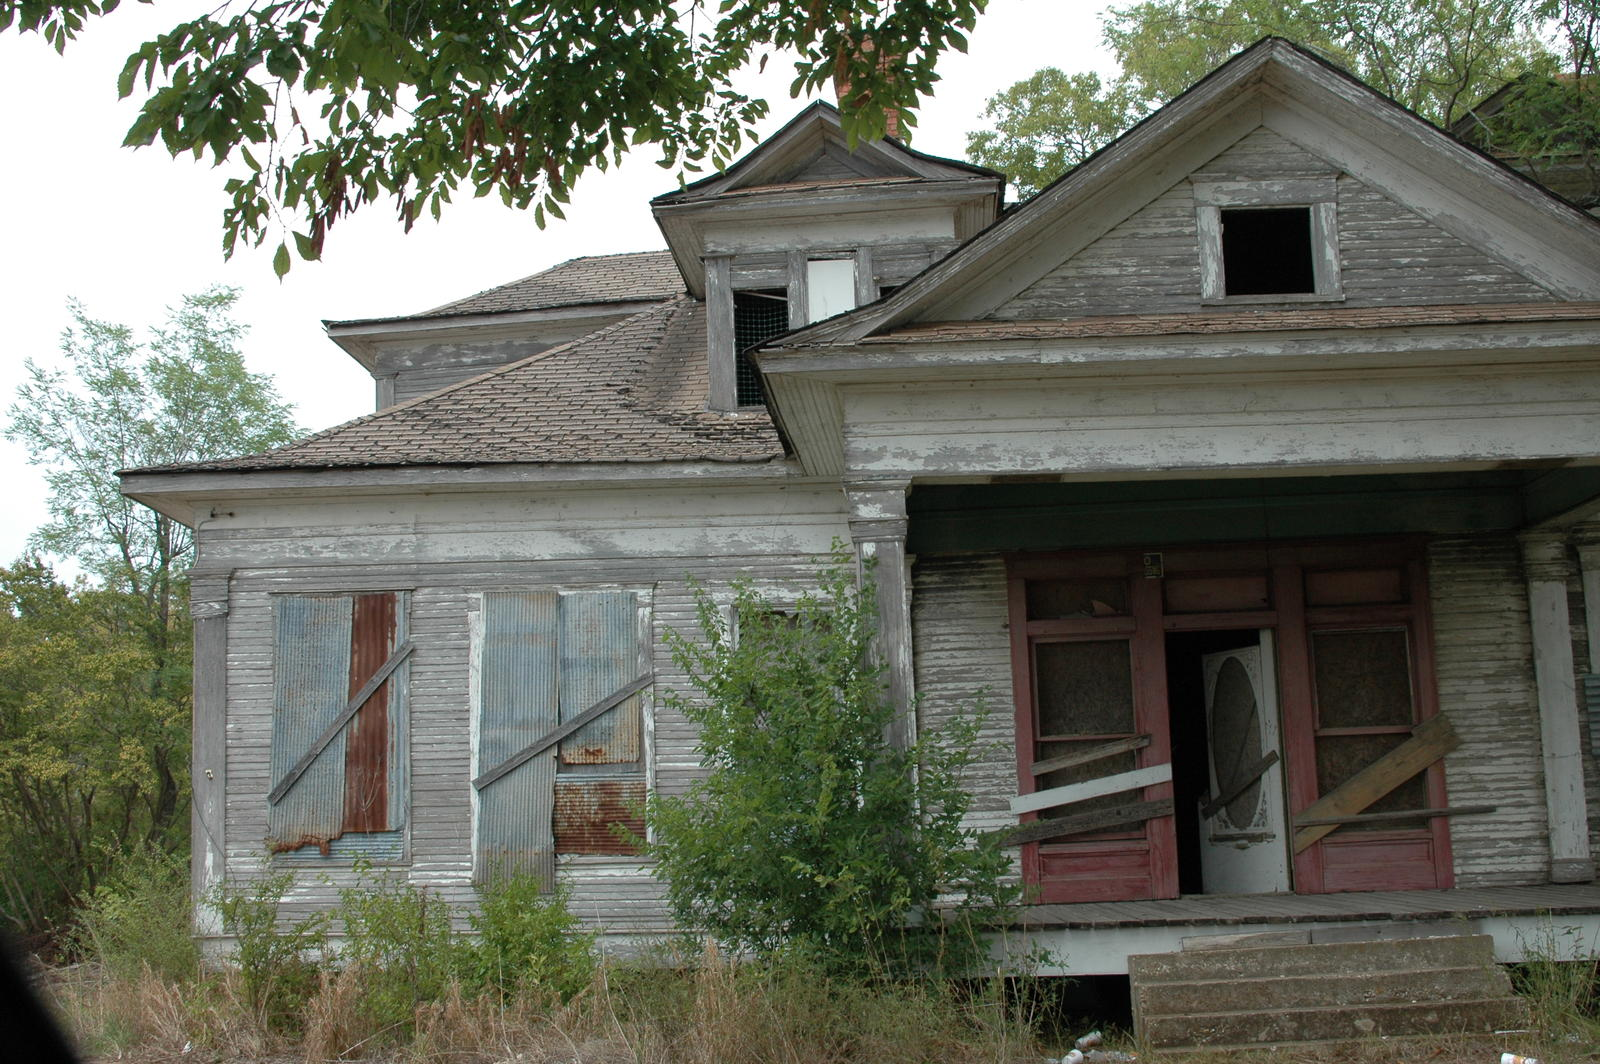 Old house in fairfield texas ennis liberty new house for This old housse